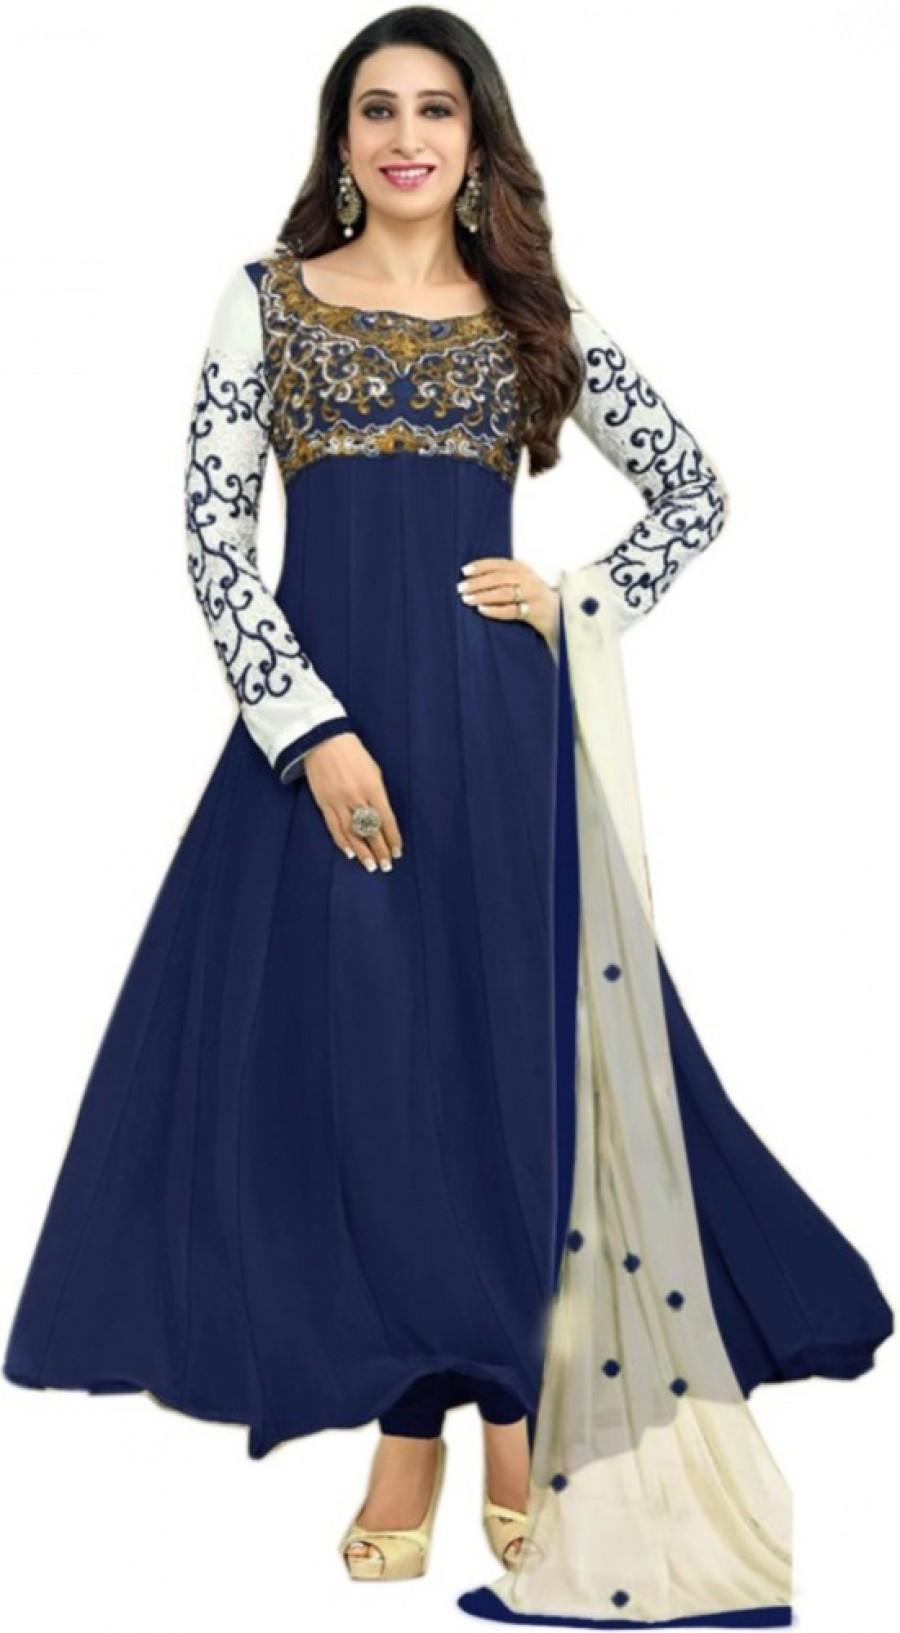 b3c8c8fbf0ee Buy Styleworld Georgette Embroidered Semi stitched Salwar Suit Dupatta  Material Online